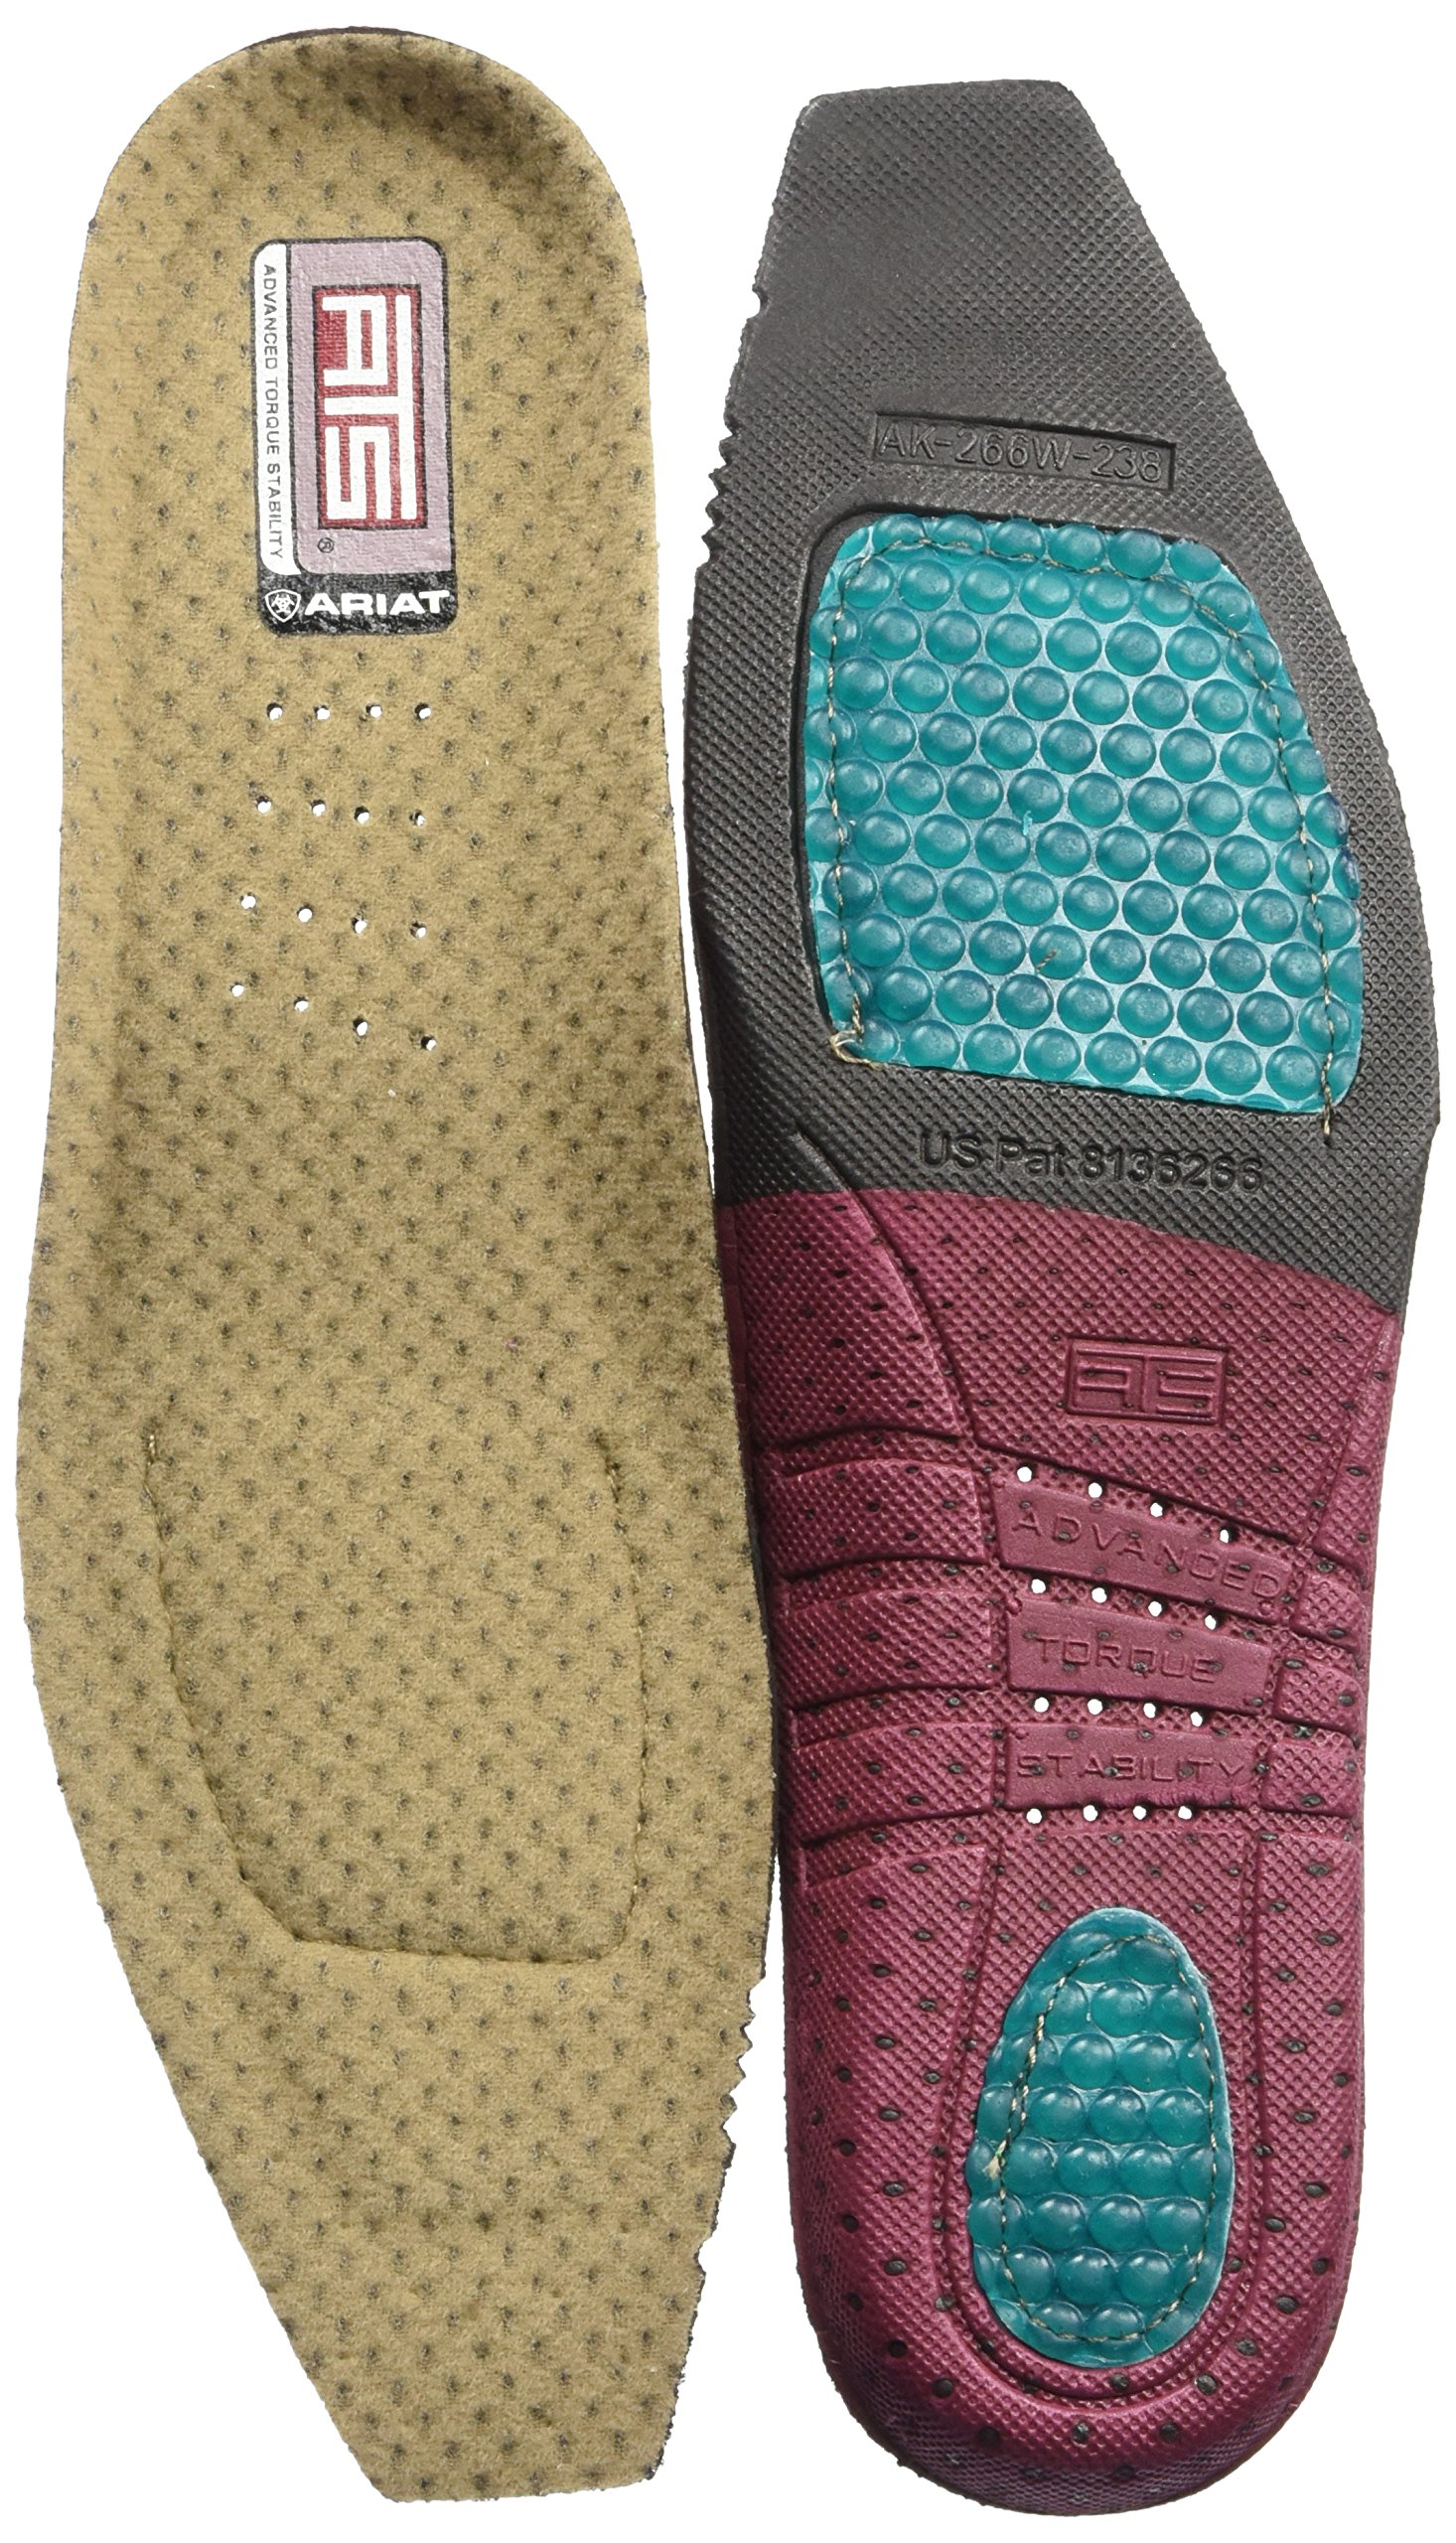 Ariat Women's Ats Square Toe Footbeds, multi, 8 by Ariat